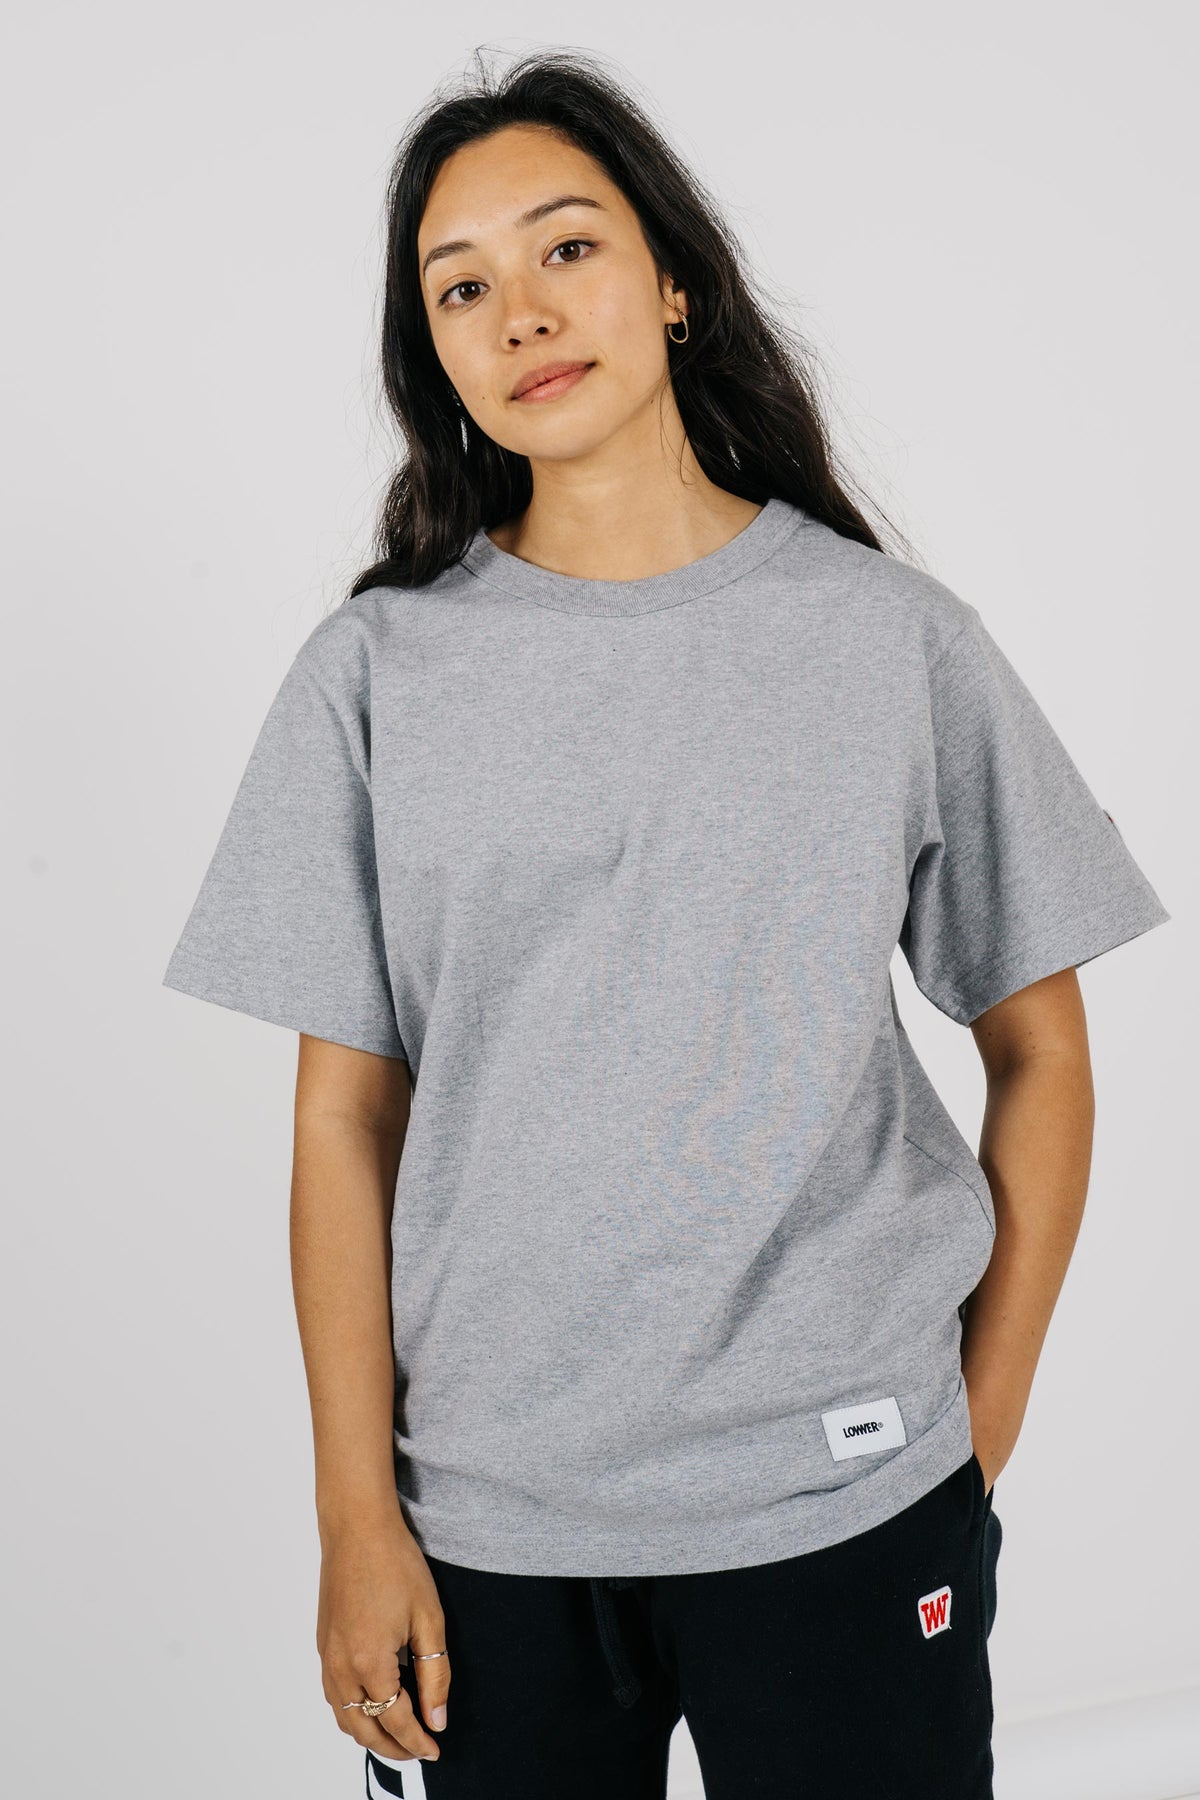 Womens Channel Tee - Sports Grey